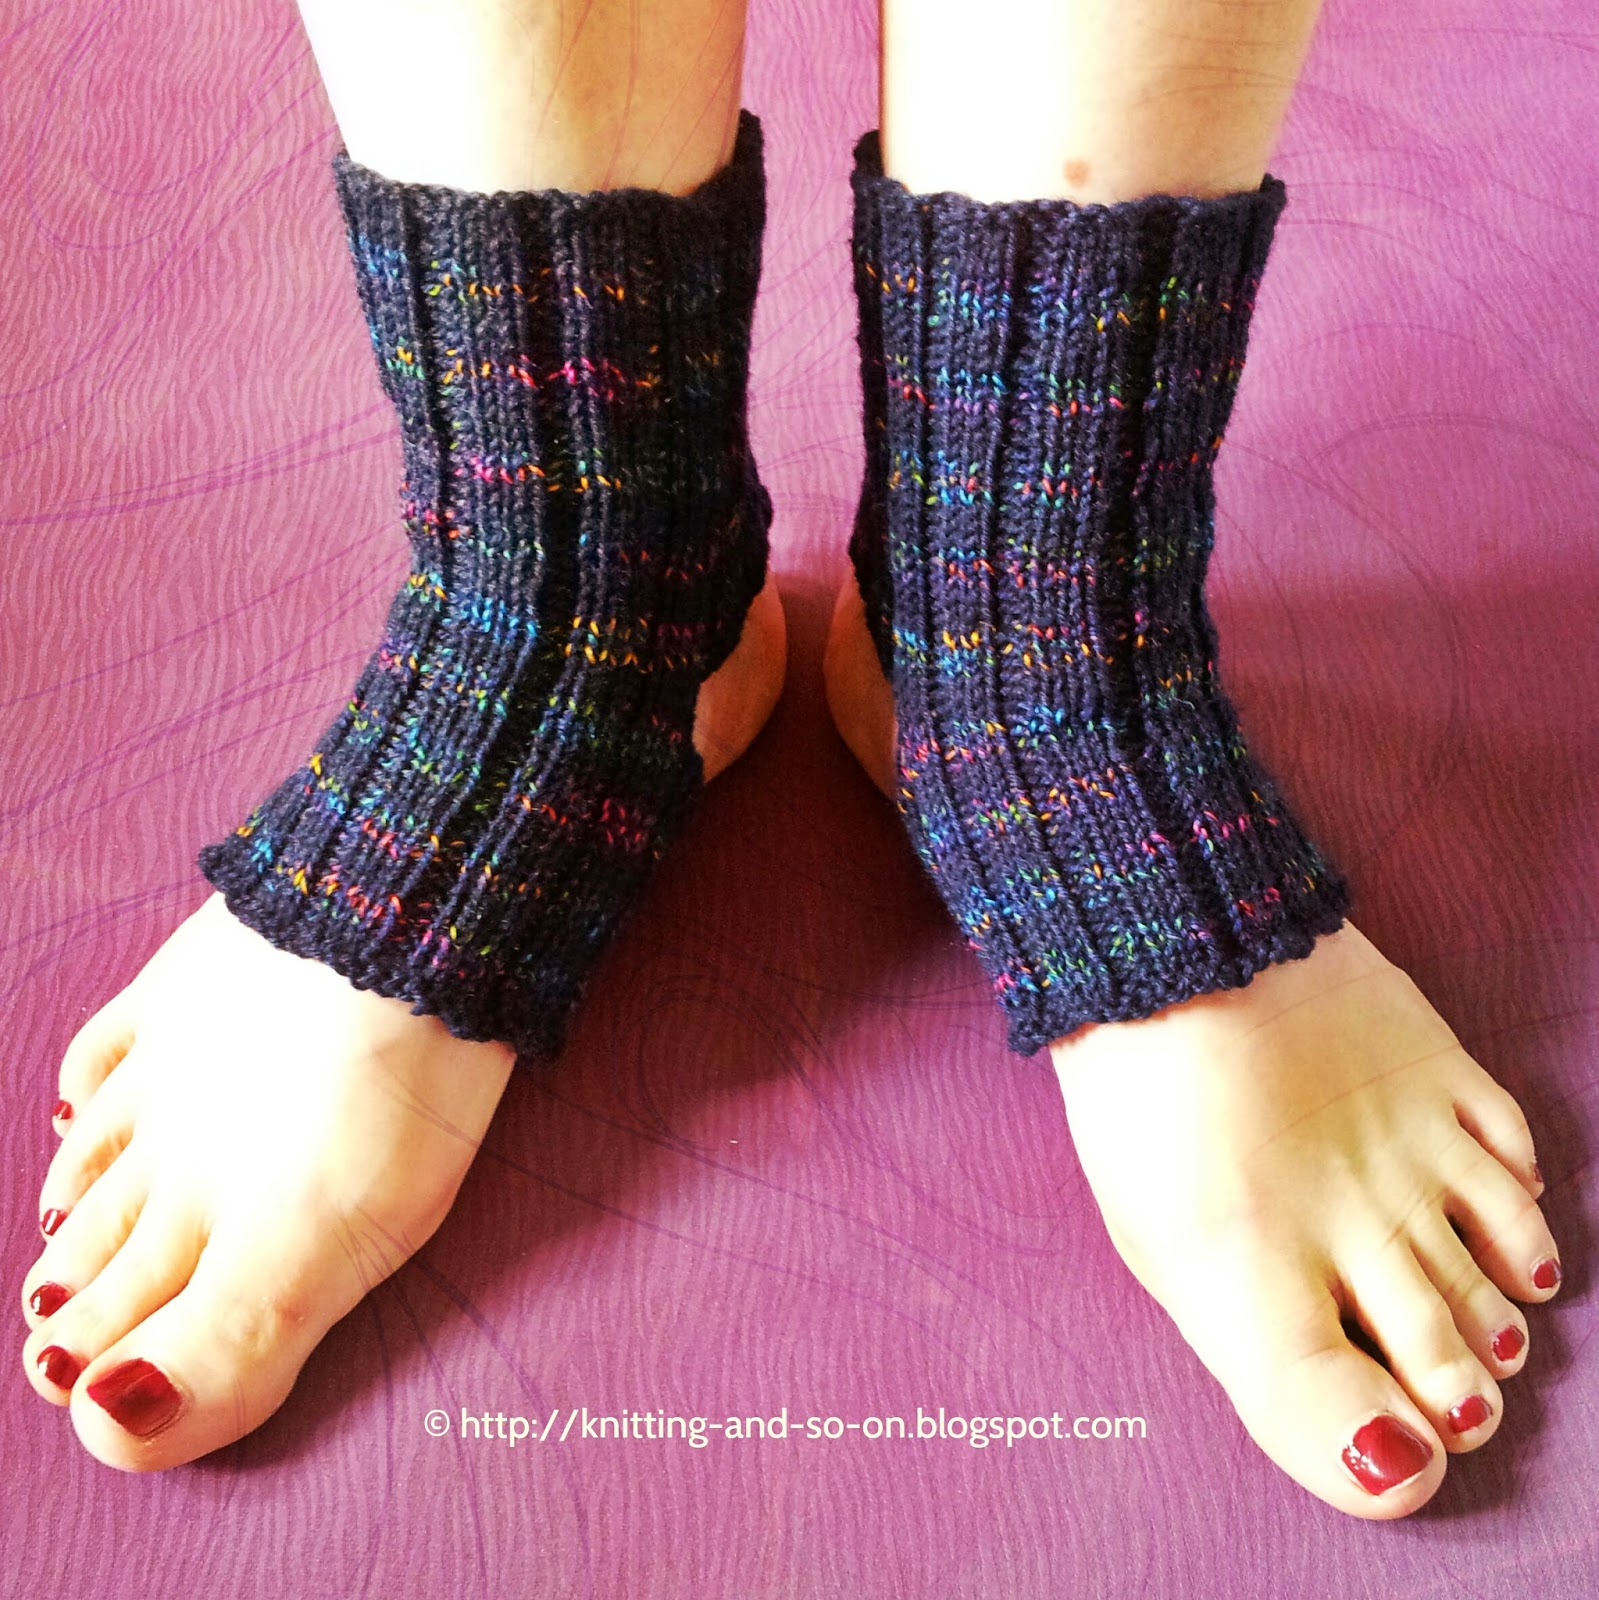 Knitting Pattern For Yoga Socks : Knitting and so on: Yoga Socks, Yoga Socks and Yoga Socks